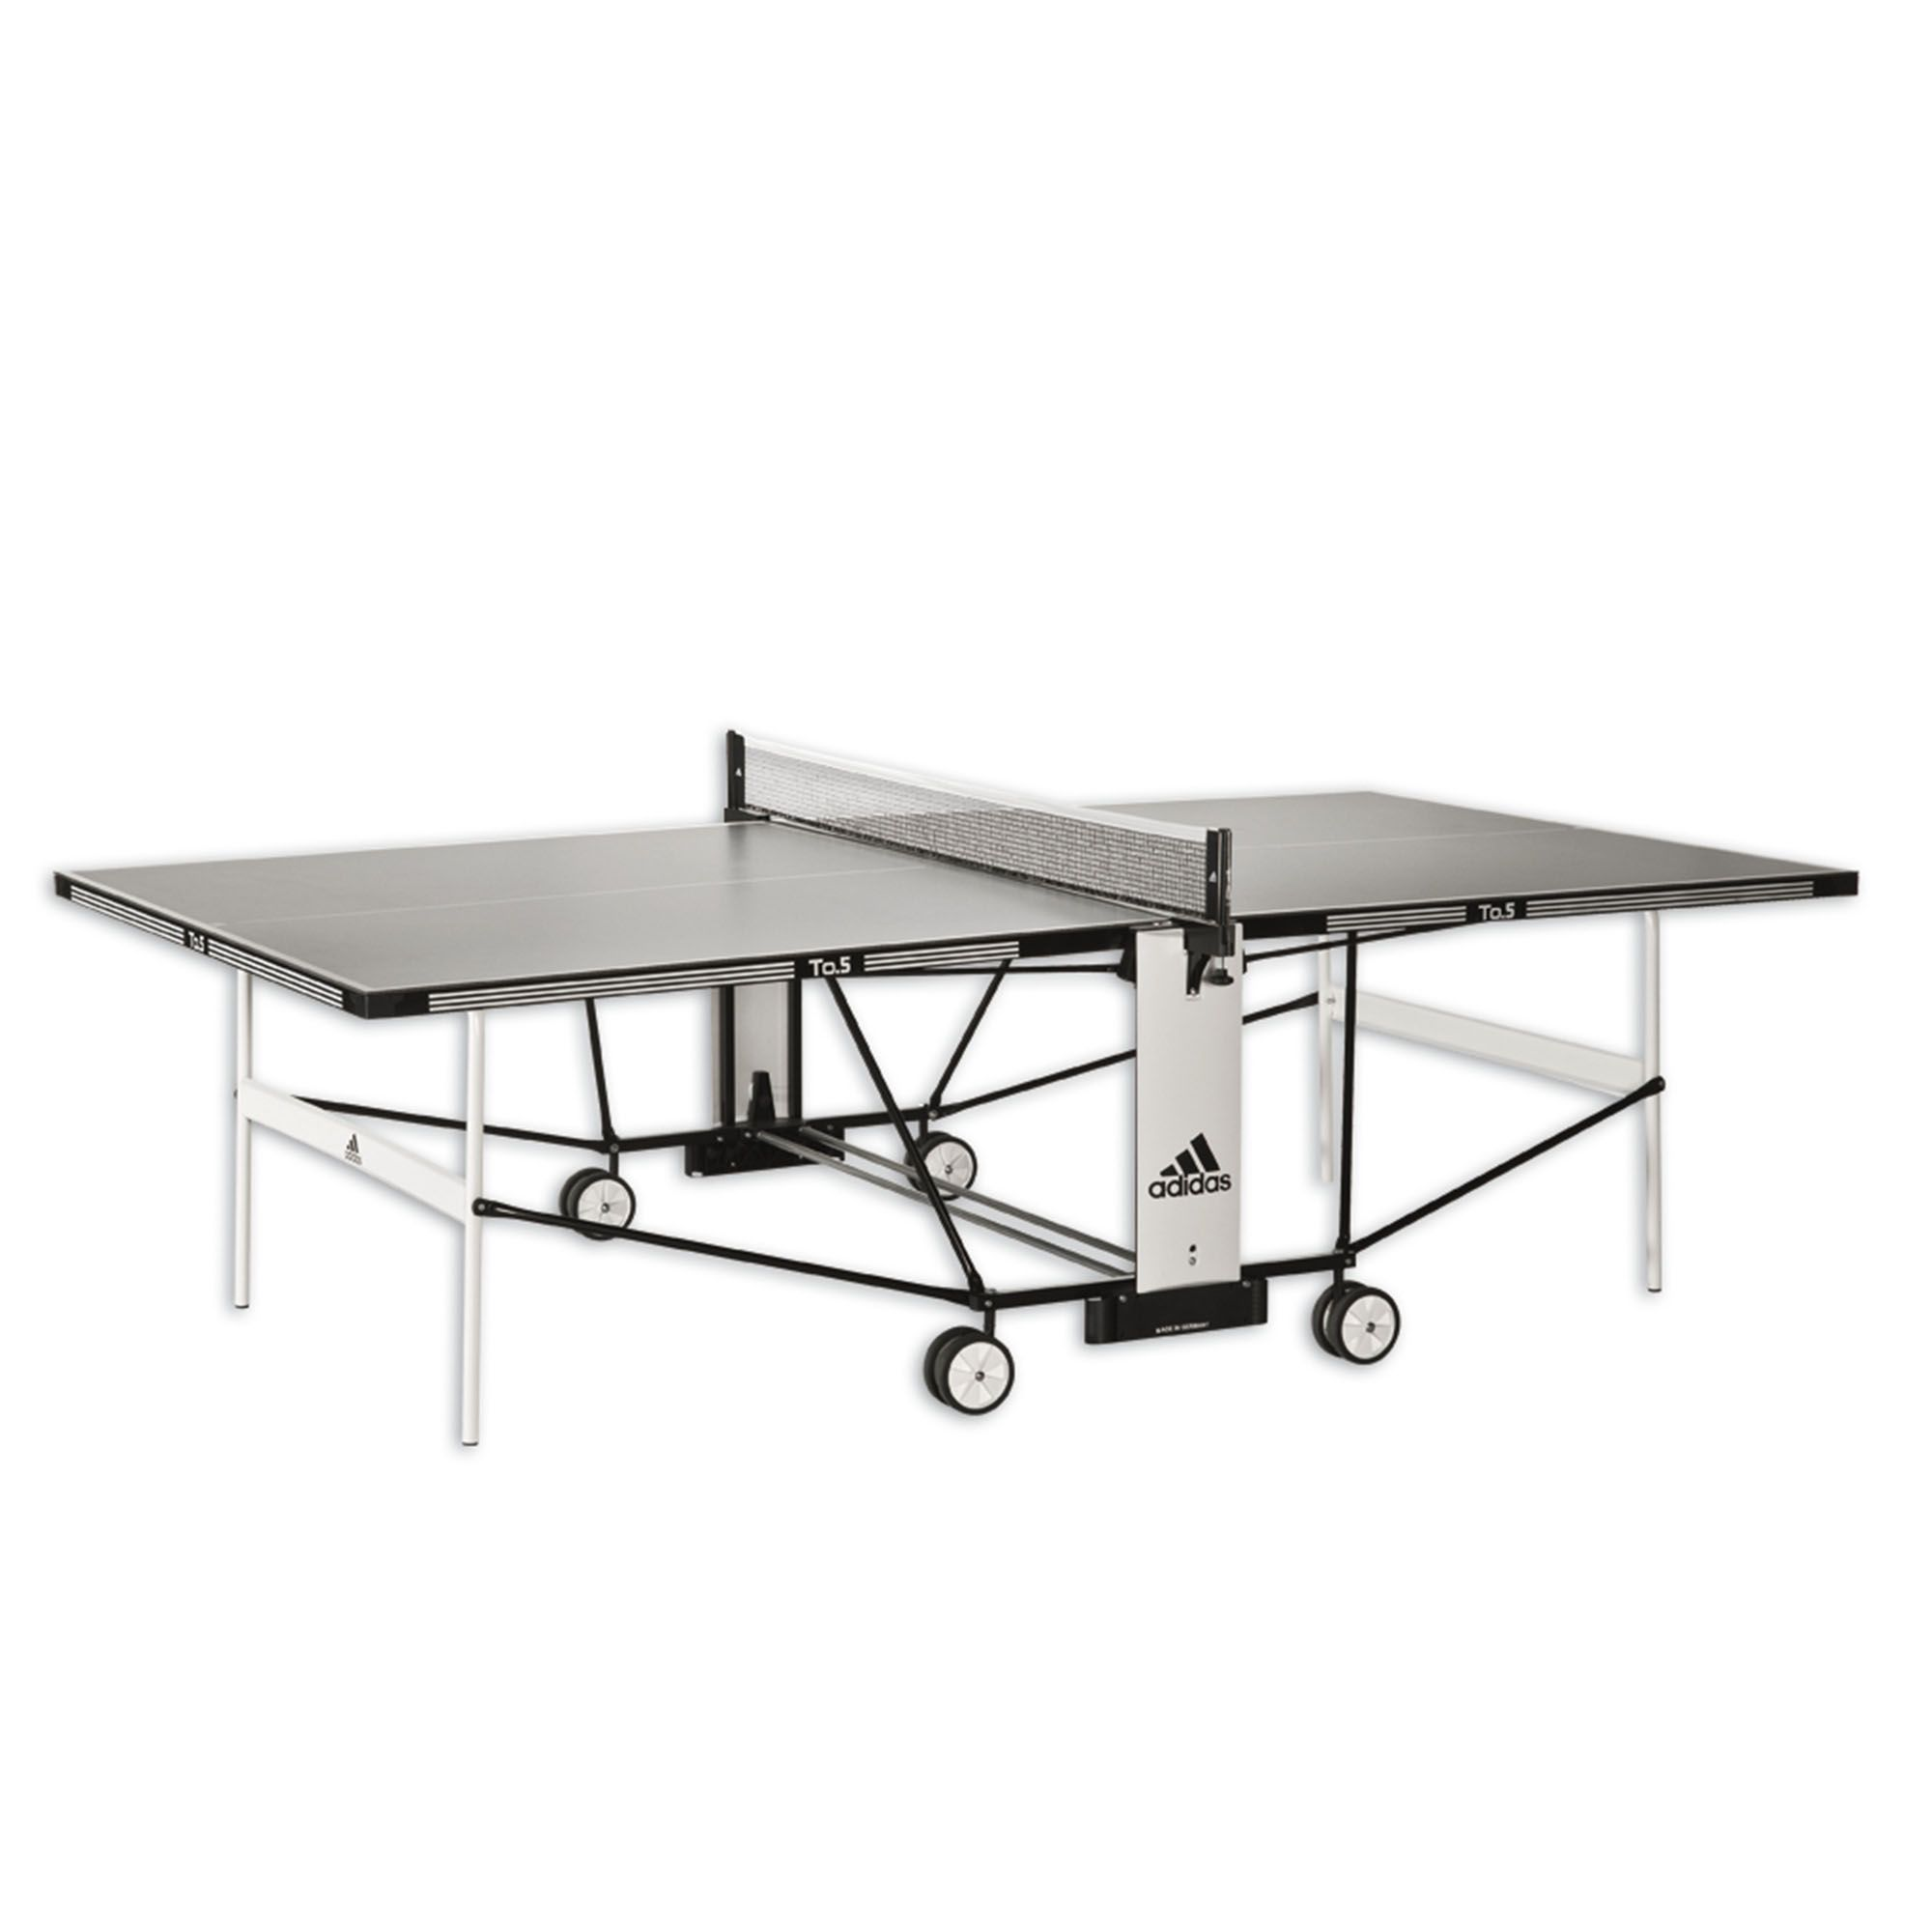 Adidas to 5 outdoor table tennis table - Weatherproof table tennis table ...